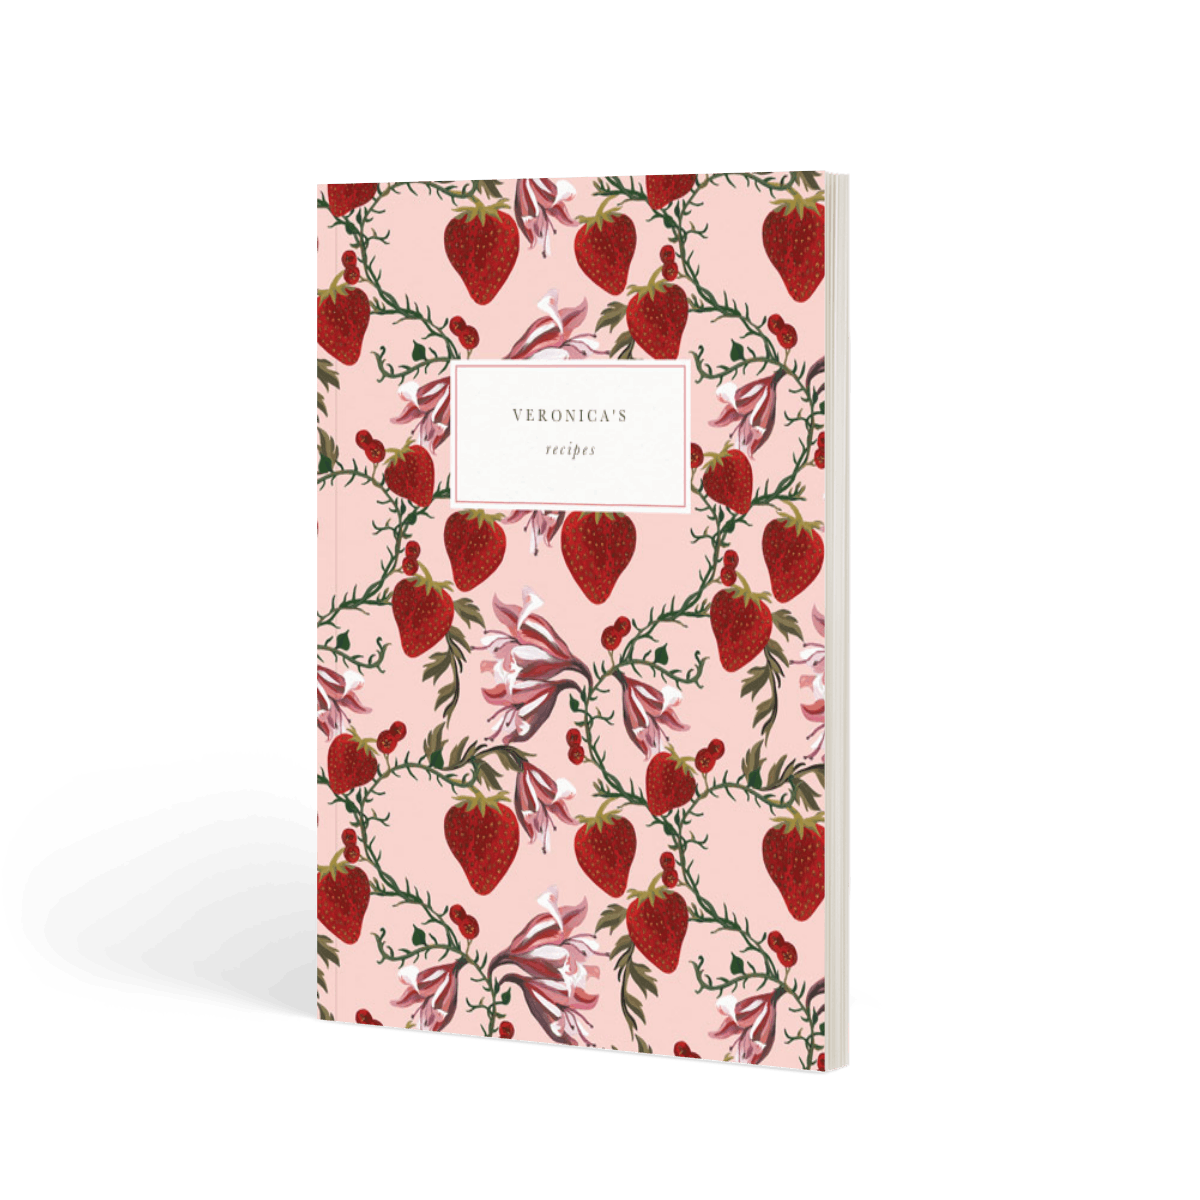 Https%3a%2f%2fwww.papier.com%2fproduct image%2f54102%2f6%2fstrawberry floral 13014 front 1542292176.png?ixlib=rb 1.1